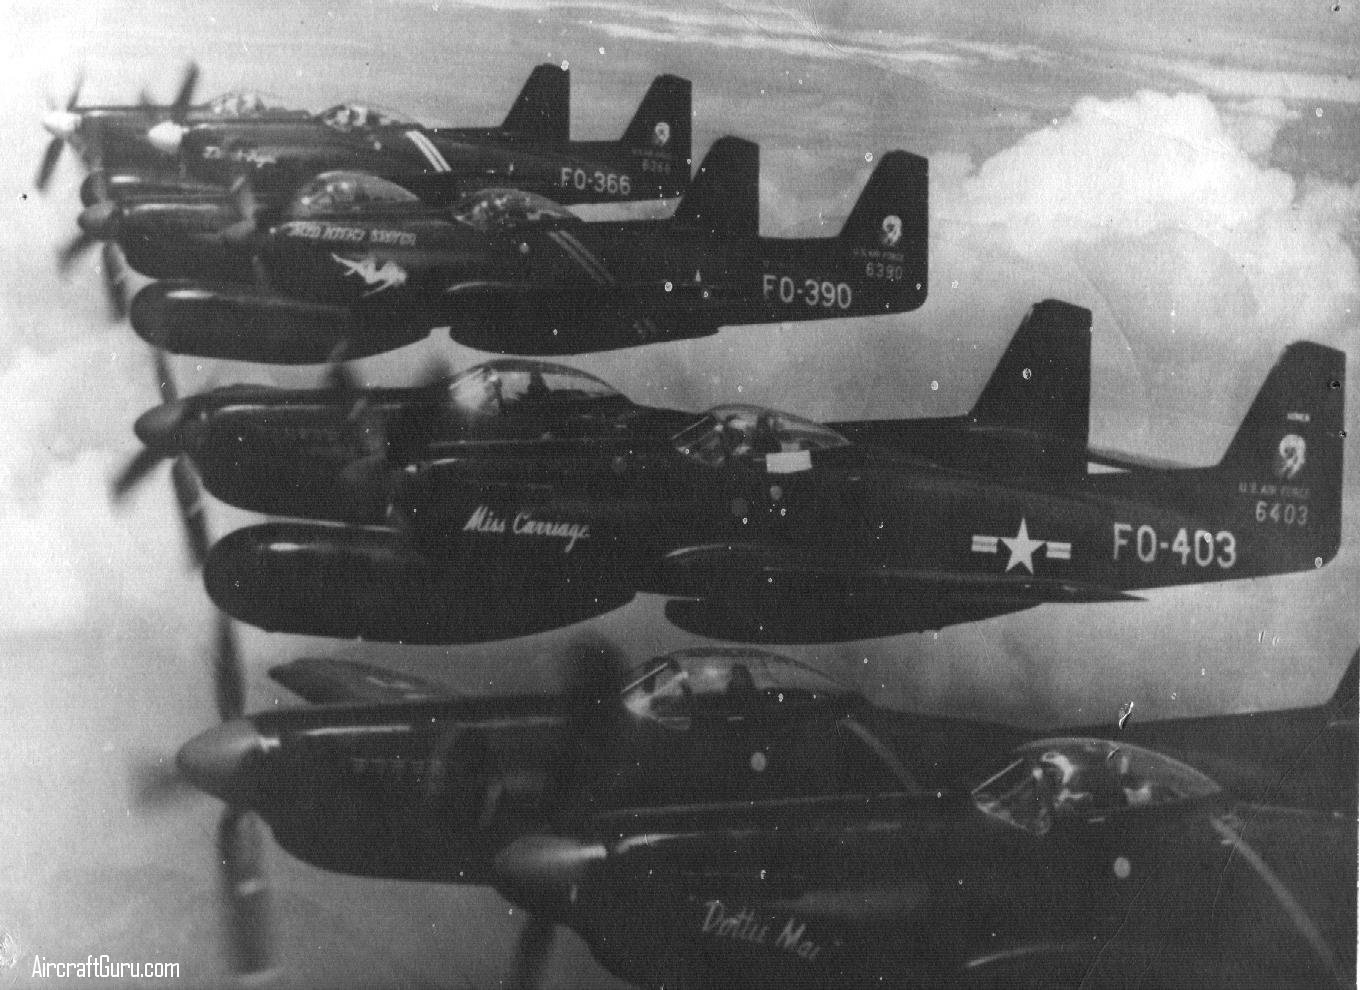 F-82 Twin Mustang - This photo was sent to us by Francis Piraino.  He wrote: